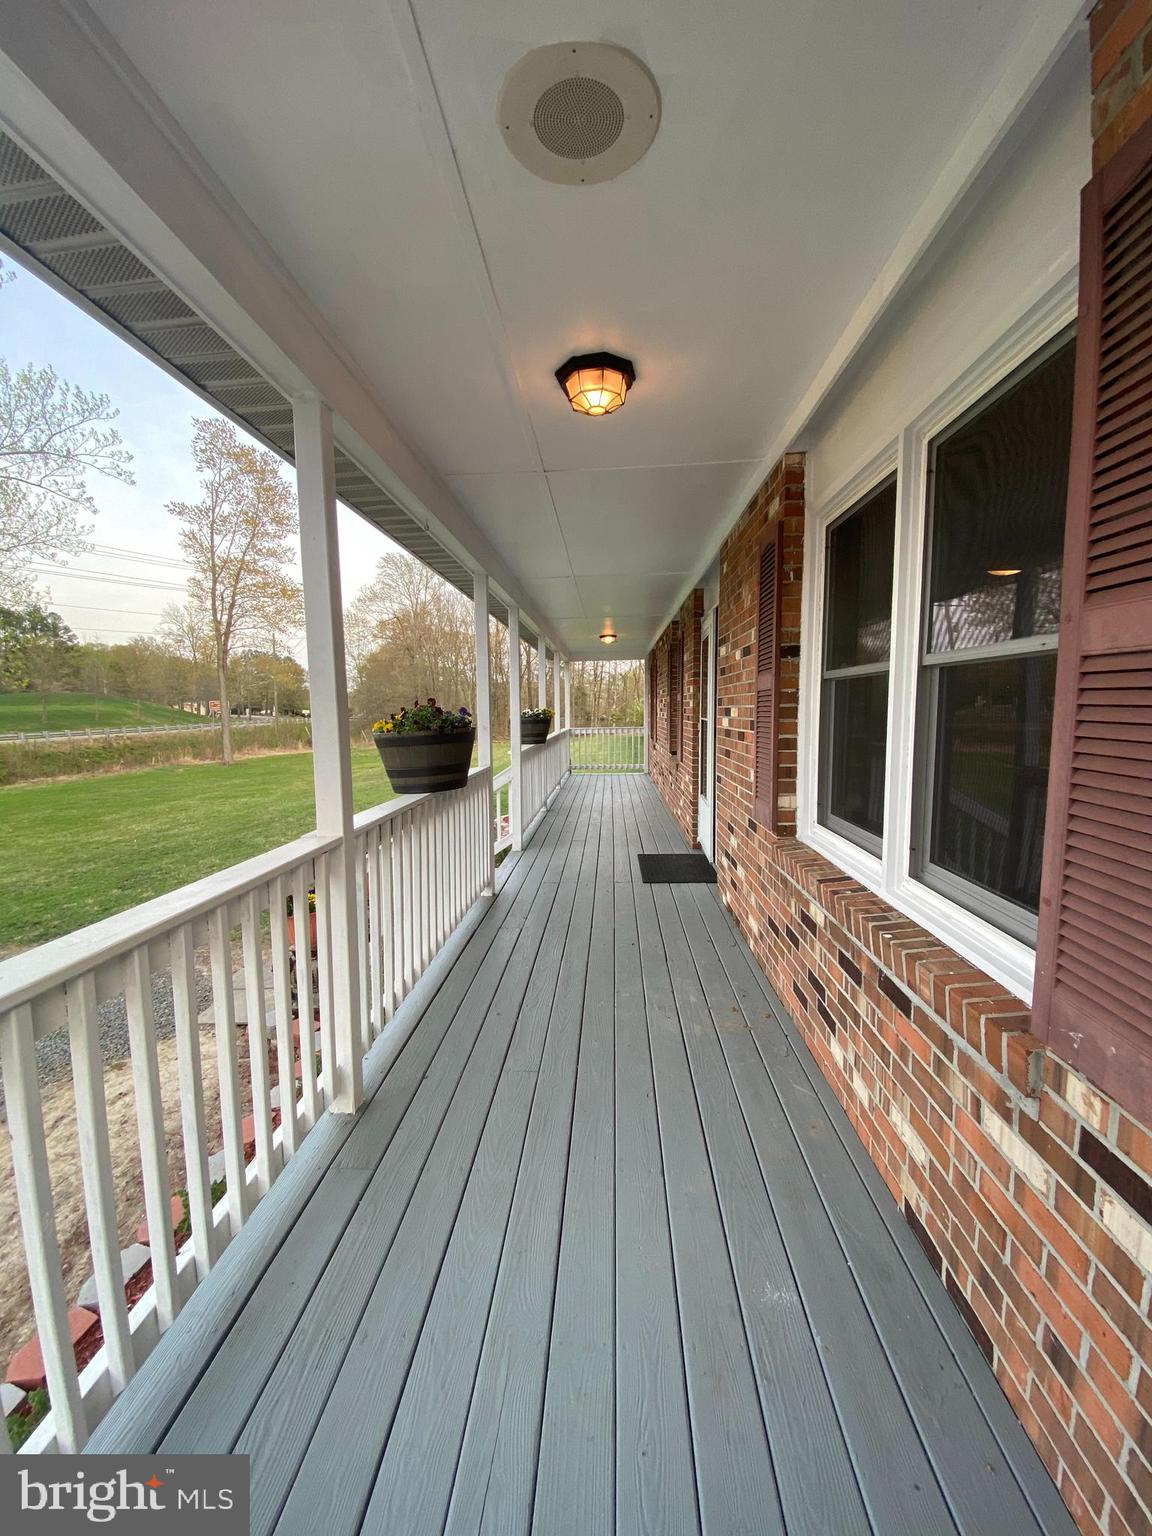 Lots of room here for the price! Almost an ACREand NO HOA! The attic has been finished to accommodat